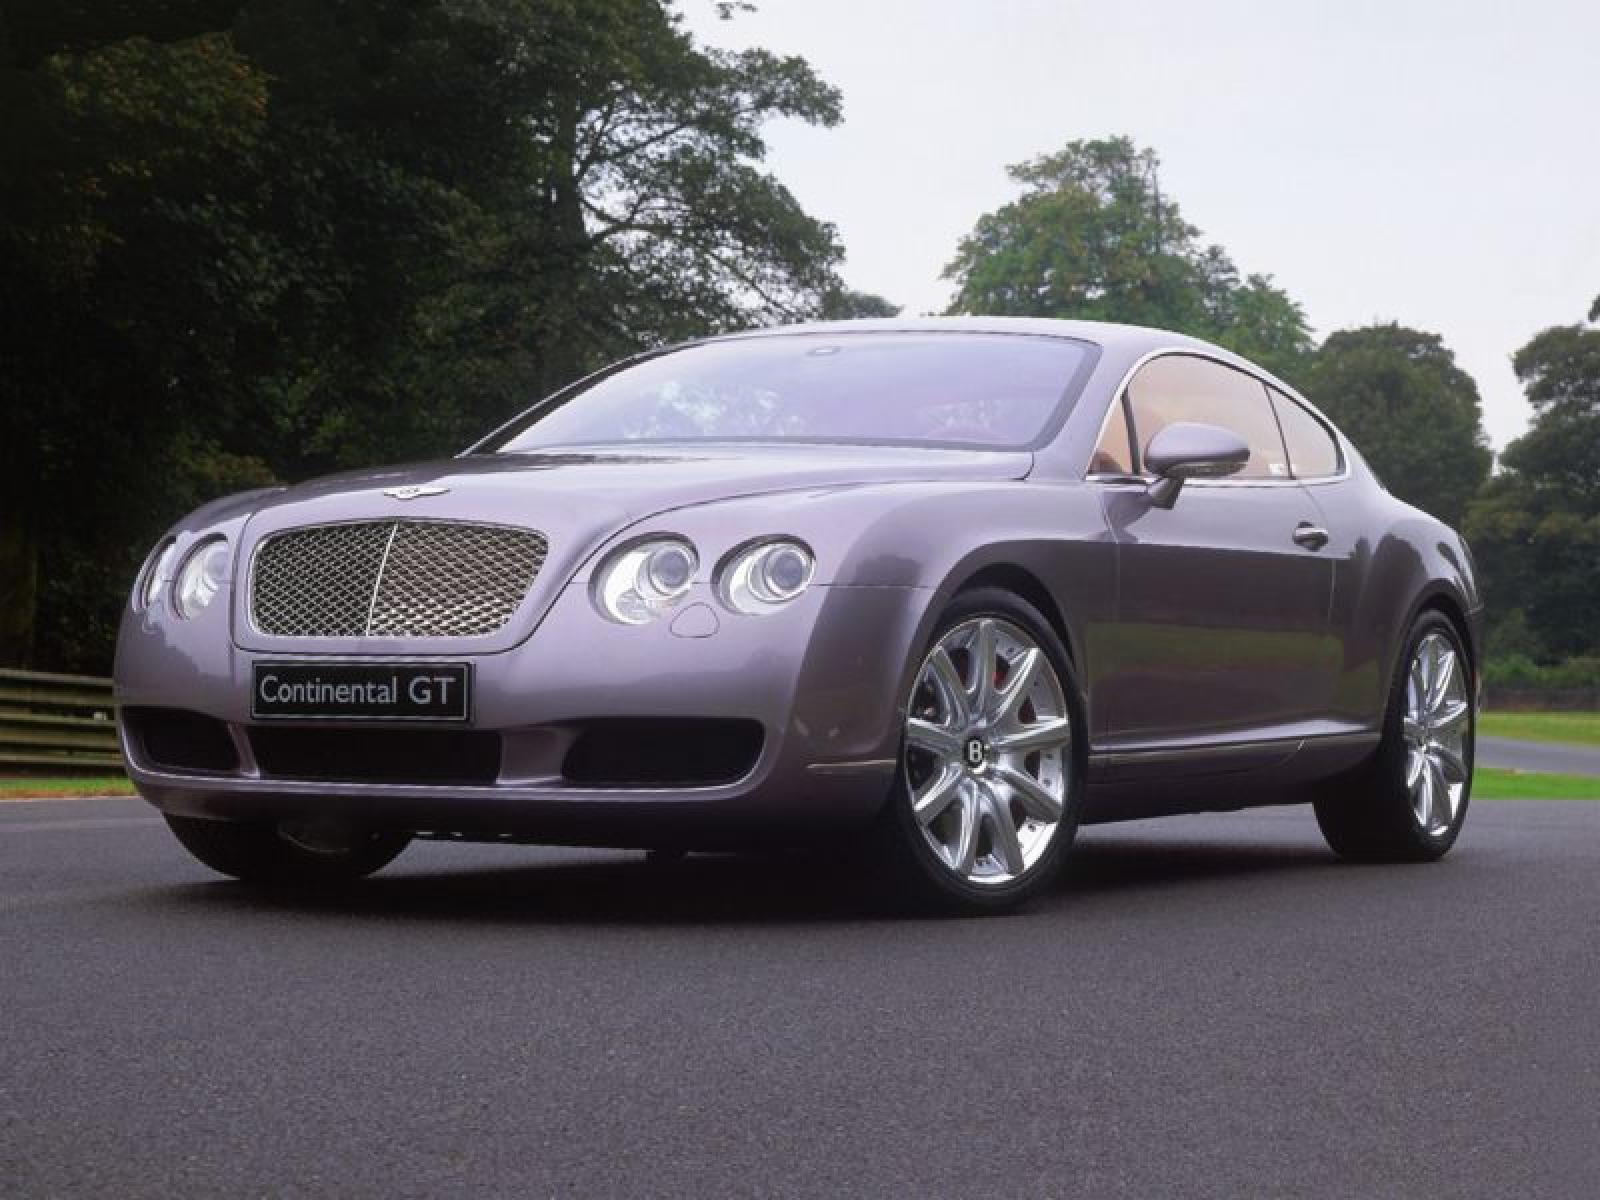 2007 bentley continental gt information and photos zombiedrive. Black Bedroom Furniture Sets. Home Design Ideas